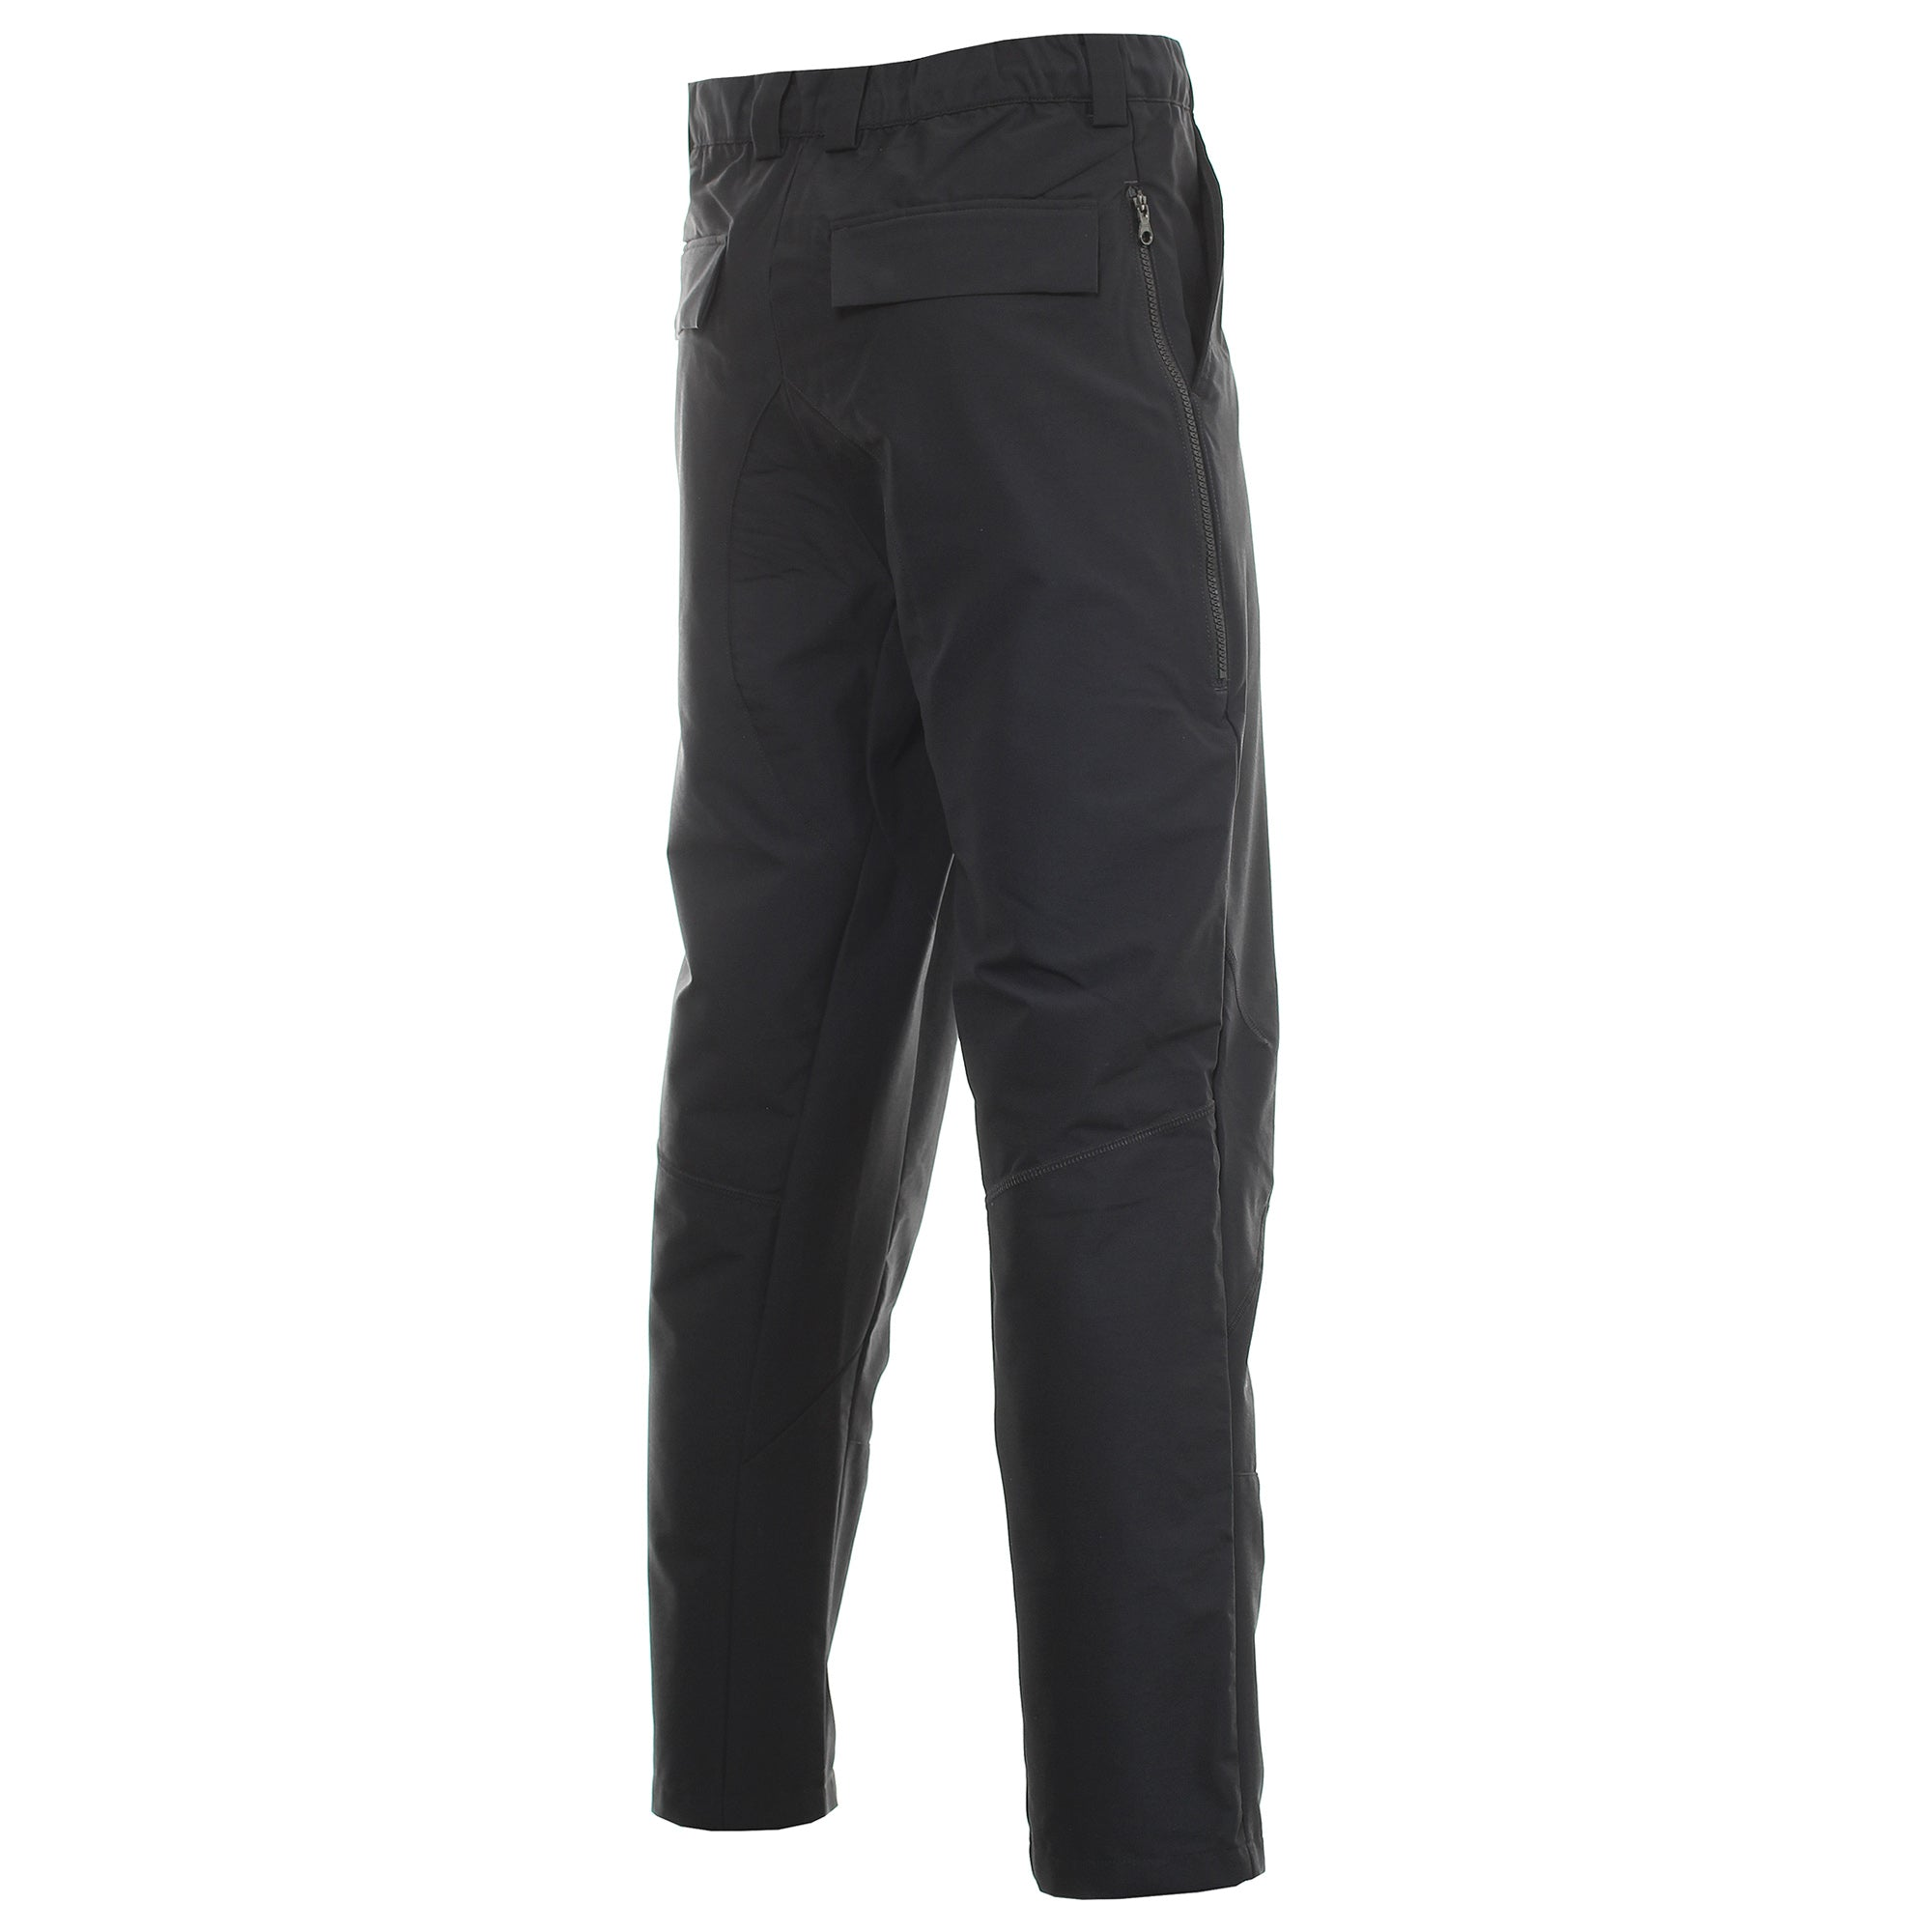 Nike Golf Flex Novelty Pant AV4123